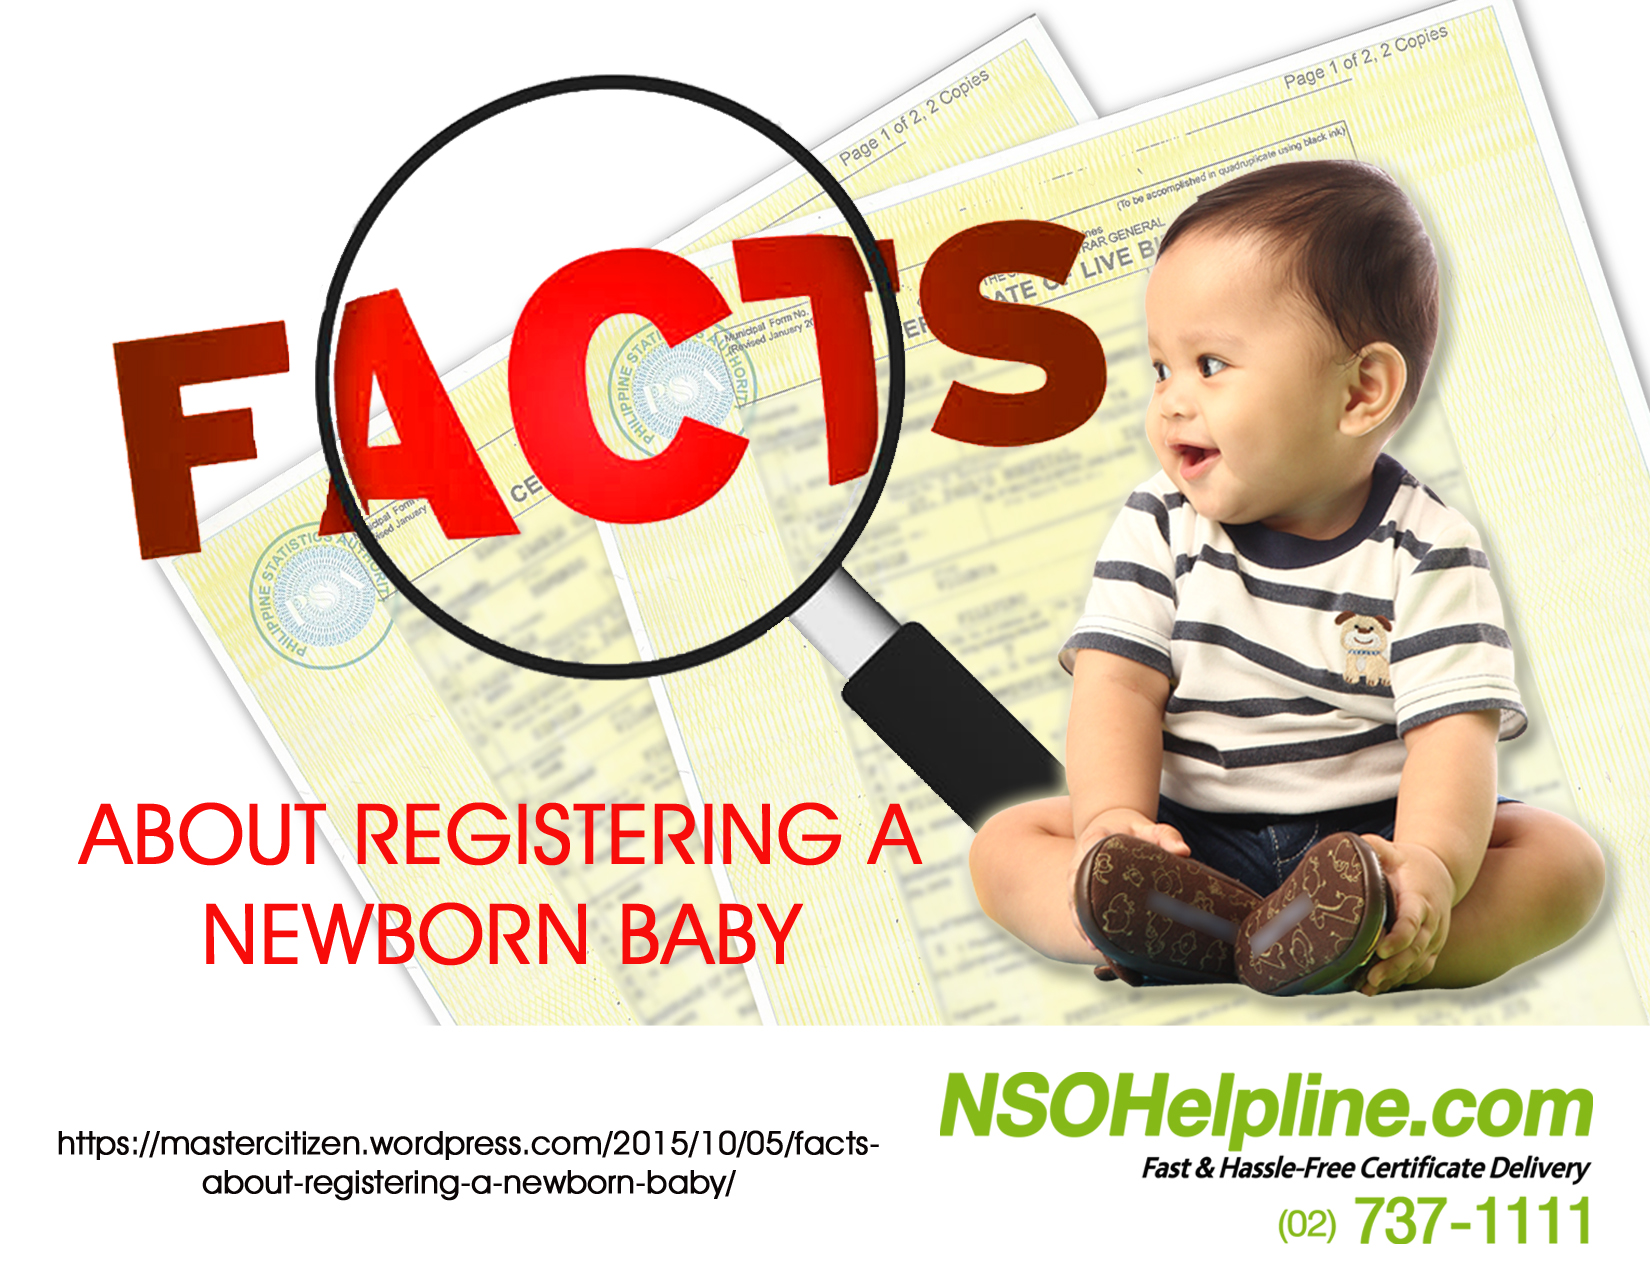 How is the registration of a newborn